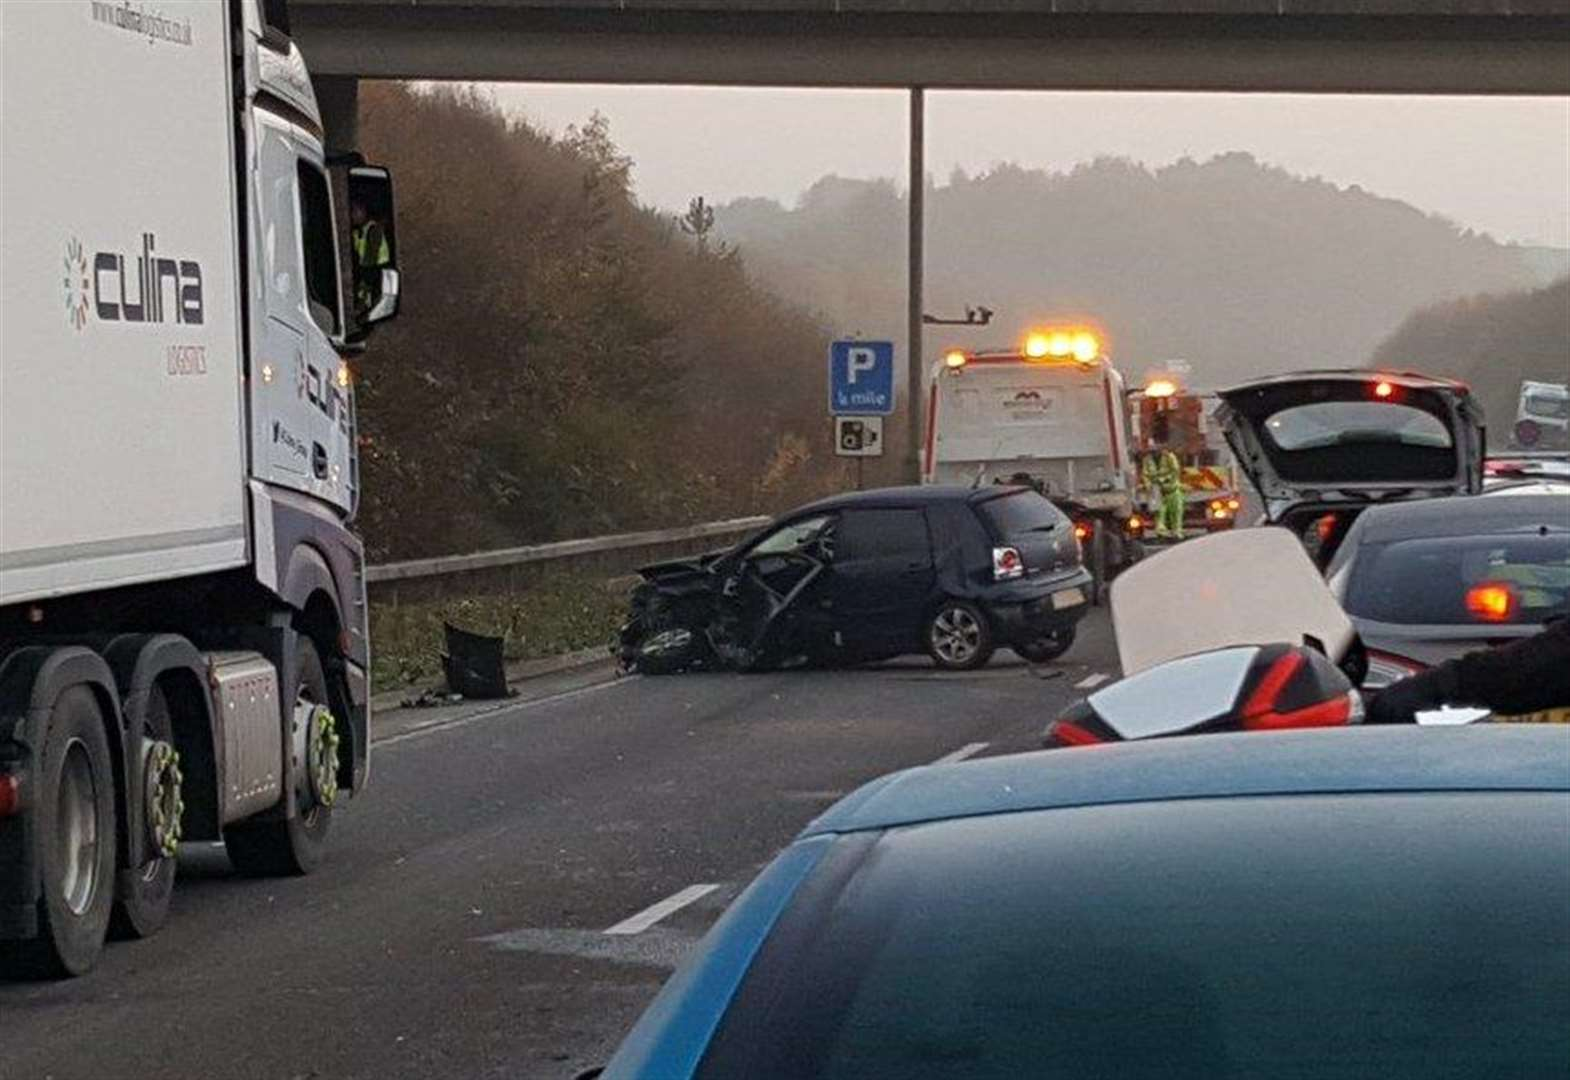 A249 reopens after accident